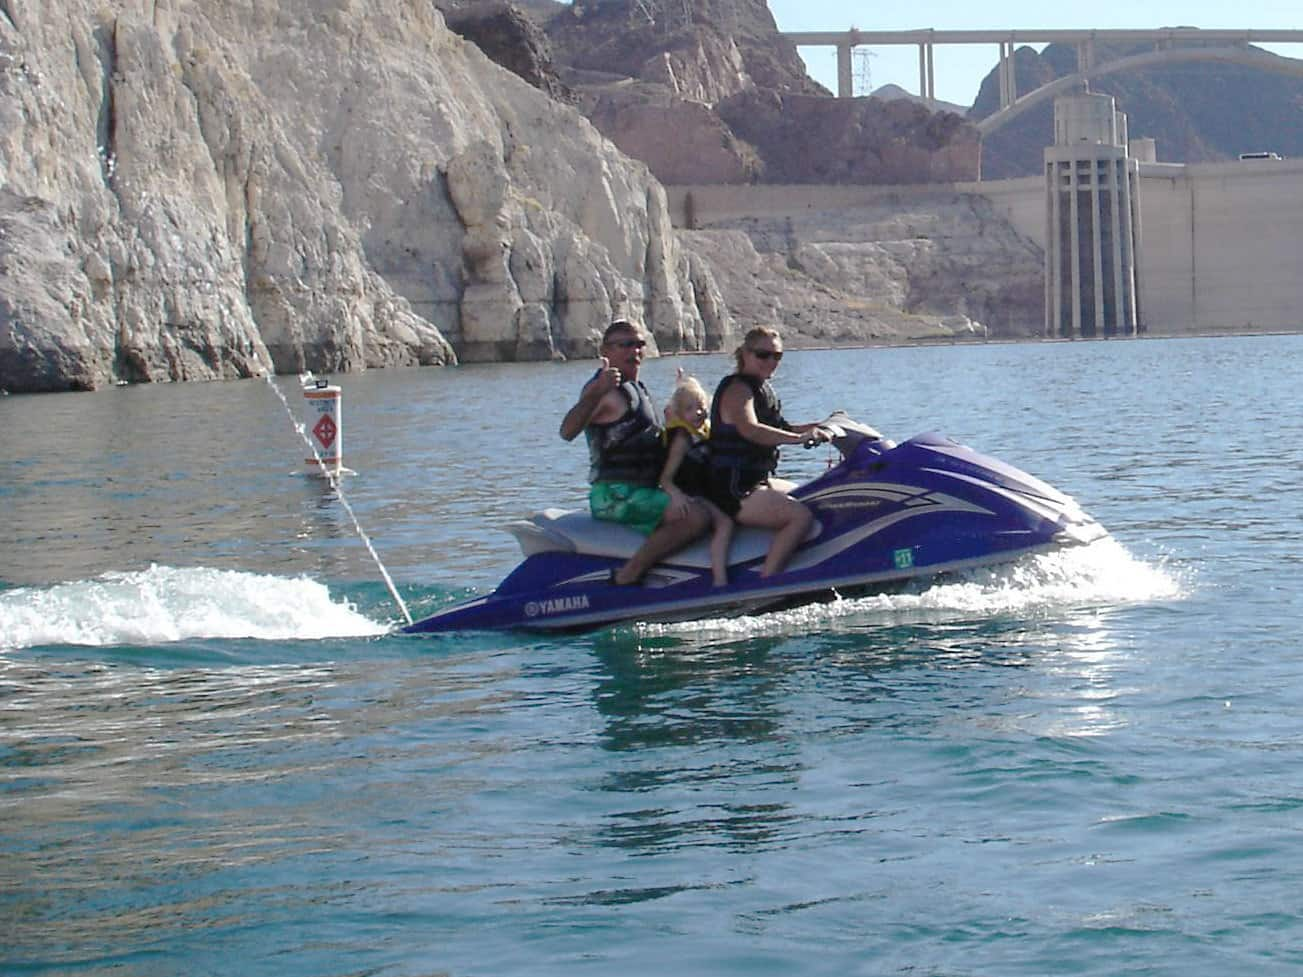 Lake Mead Jet Ski Waverunner Rentals In Las Vegas Nv Above All Las Vegas Atv Tours